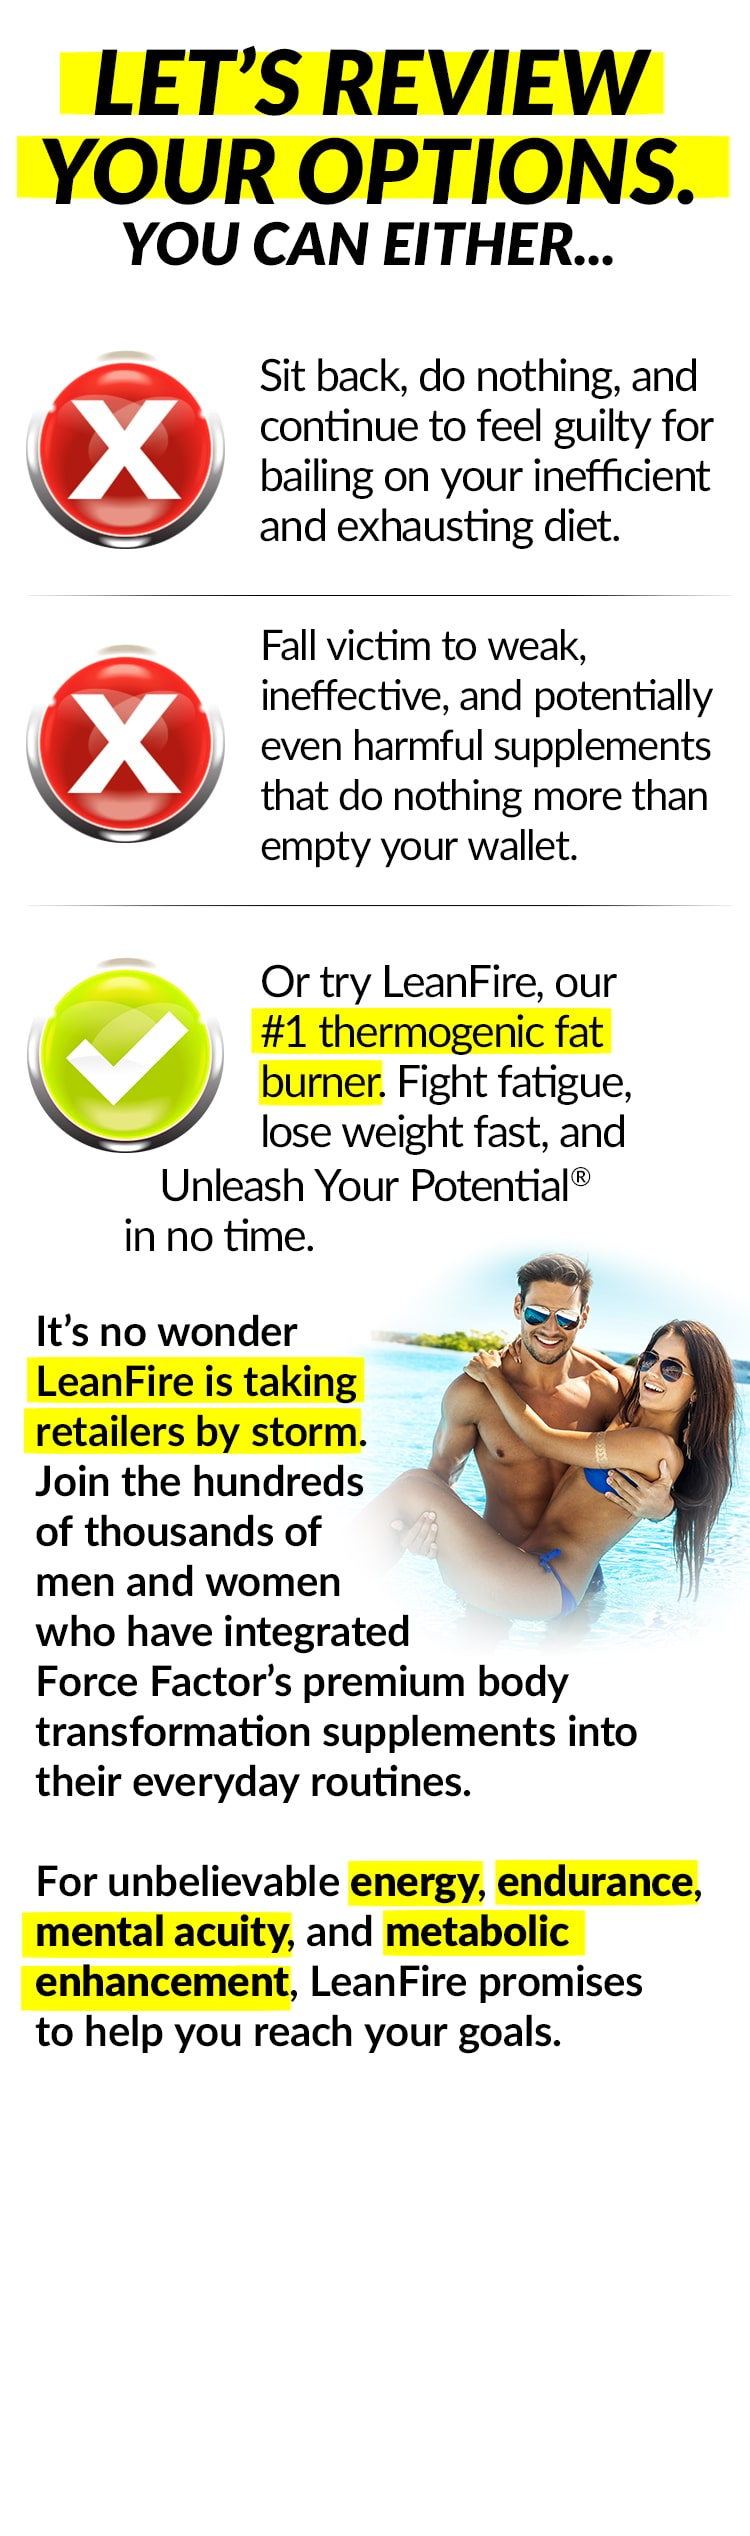 LET'S REVIEW YOUR OPTIONS. YOU CAN EITHER... Sit back, do nothing, and continue to feel guilty for bailing on your inefficient and exhausting diet. Fall victim to weak, ineffective, and potentially even harmful supplements that do nothing more than empty your wall. Or try LeanFire, our #1 thermogenic fat burner. Fight fatigue, lose weight fast, and Unleash Your Potential® in no time. It's no wonder LeanFire is taking retailers by storm. Join the hundreds of thousands of men and women who have integrated Force Factor's premium body transformation supplements into their everyday routines. For unbelievable energy, endurance, mental acuity, and metabolic enhancement, LeanFire promises to help you reach your goals.